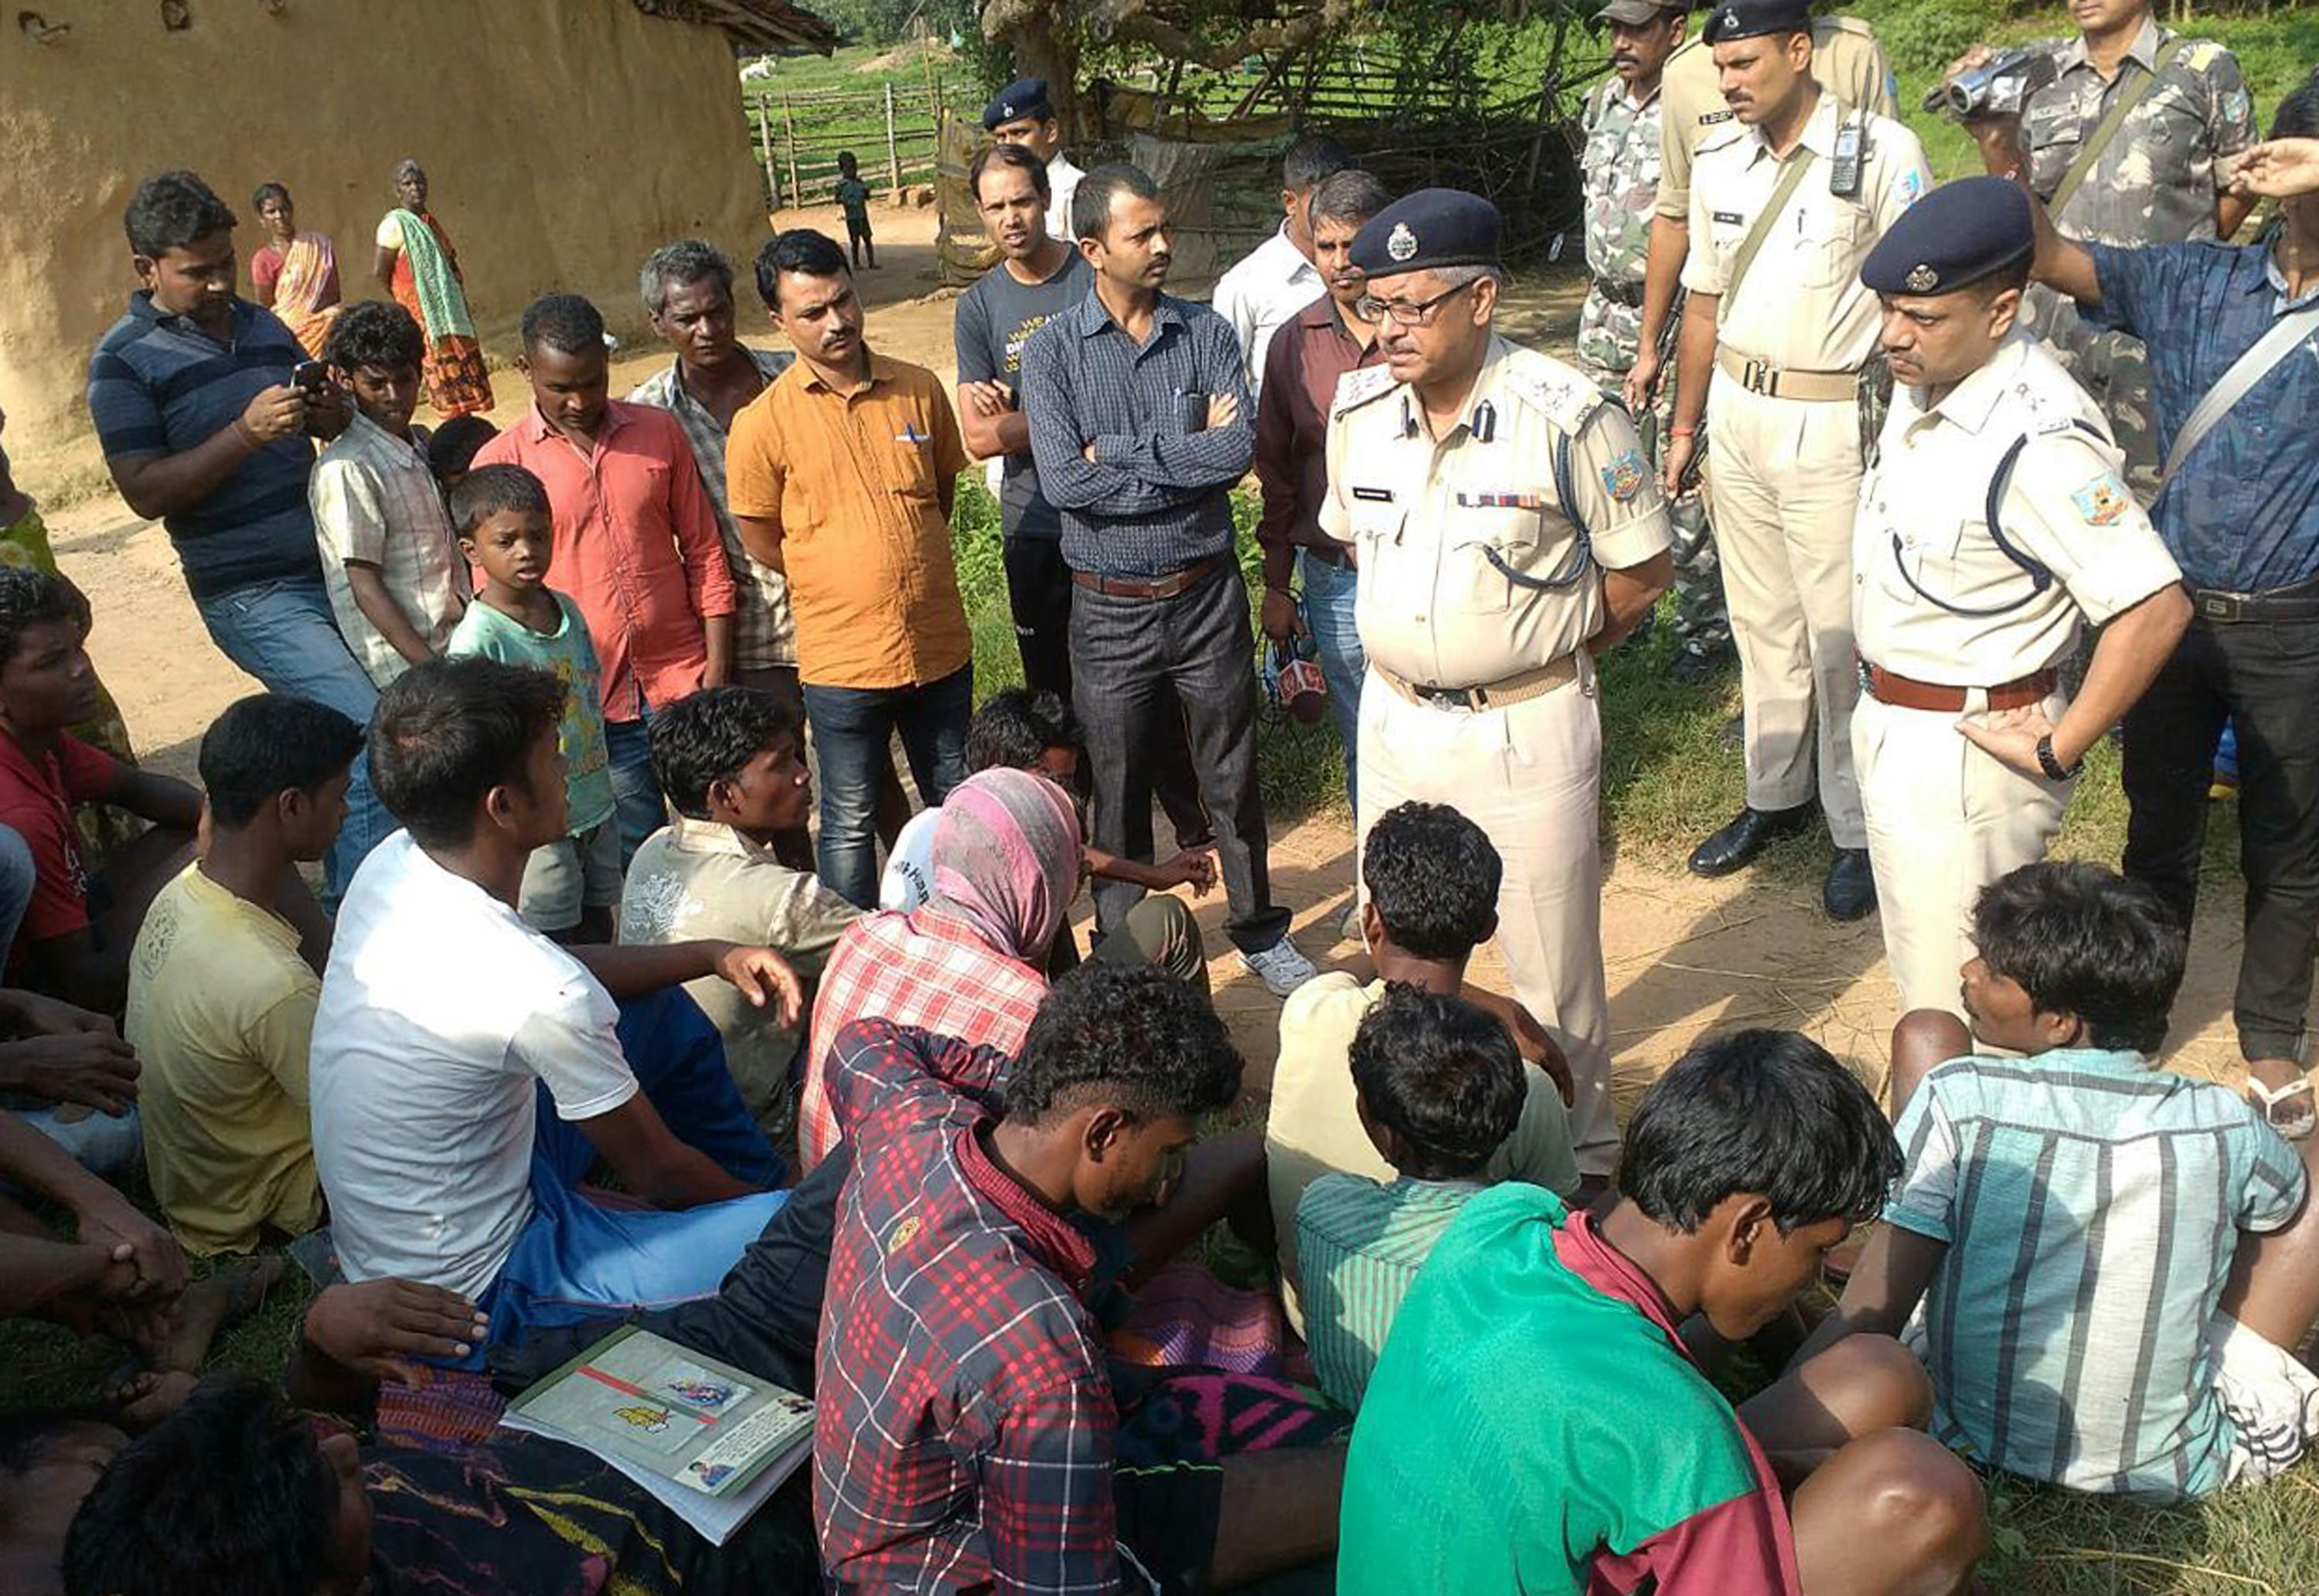 Indian police talk to villagers after five women accused of practicing witchcraft were killed in Kanjia village in India's eastern Jharkhand state on Aug. 8, 2015